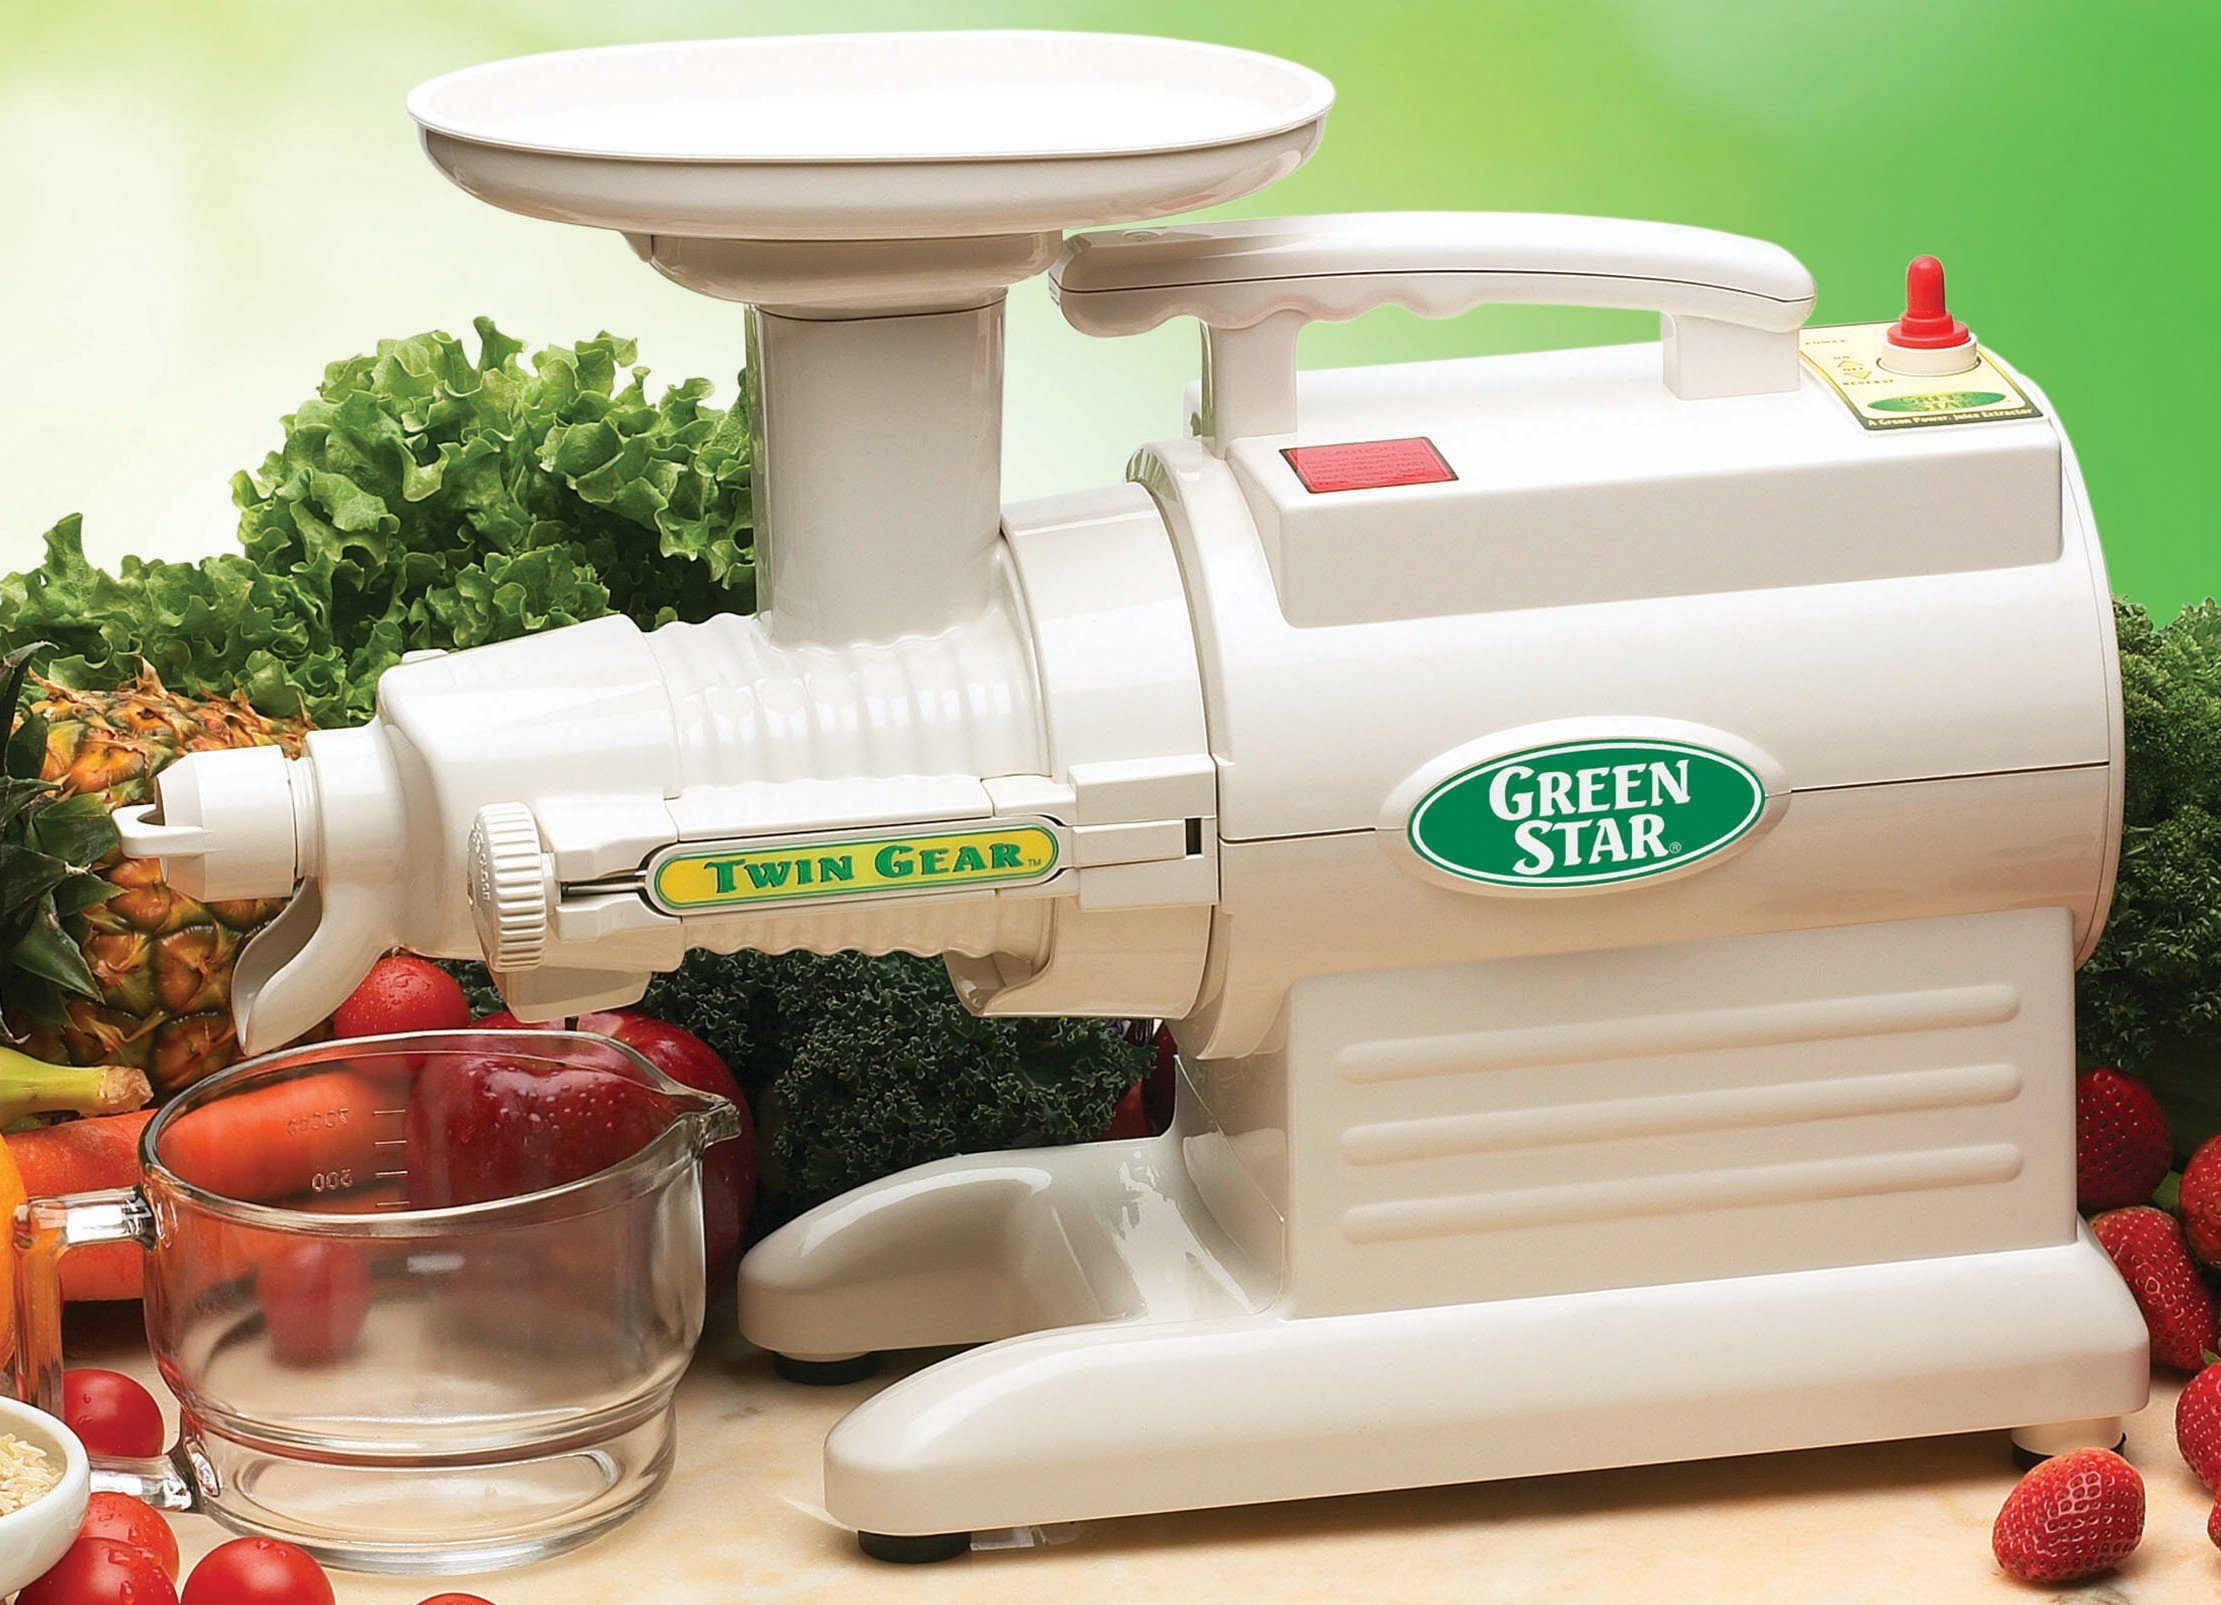 TriBest - Juicer Green Star Complete Juice Extractor GS-2000 - $485.54